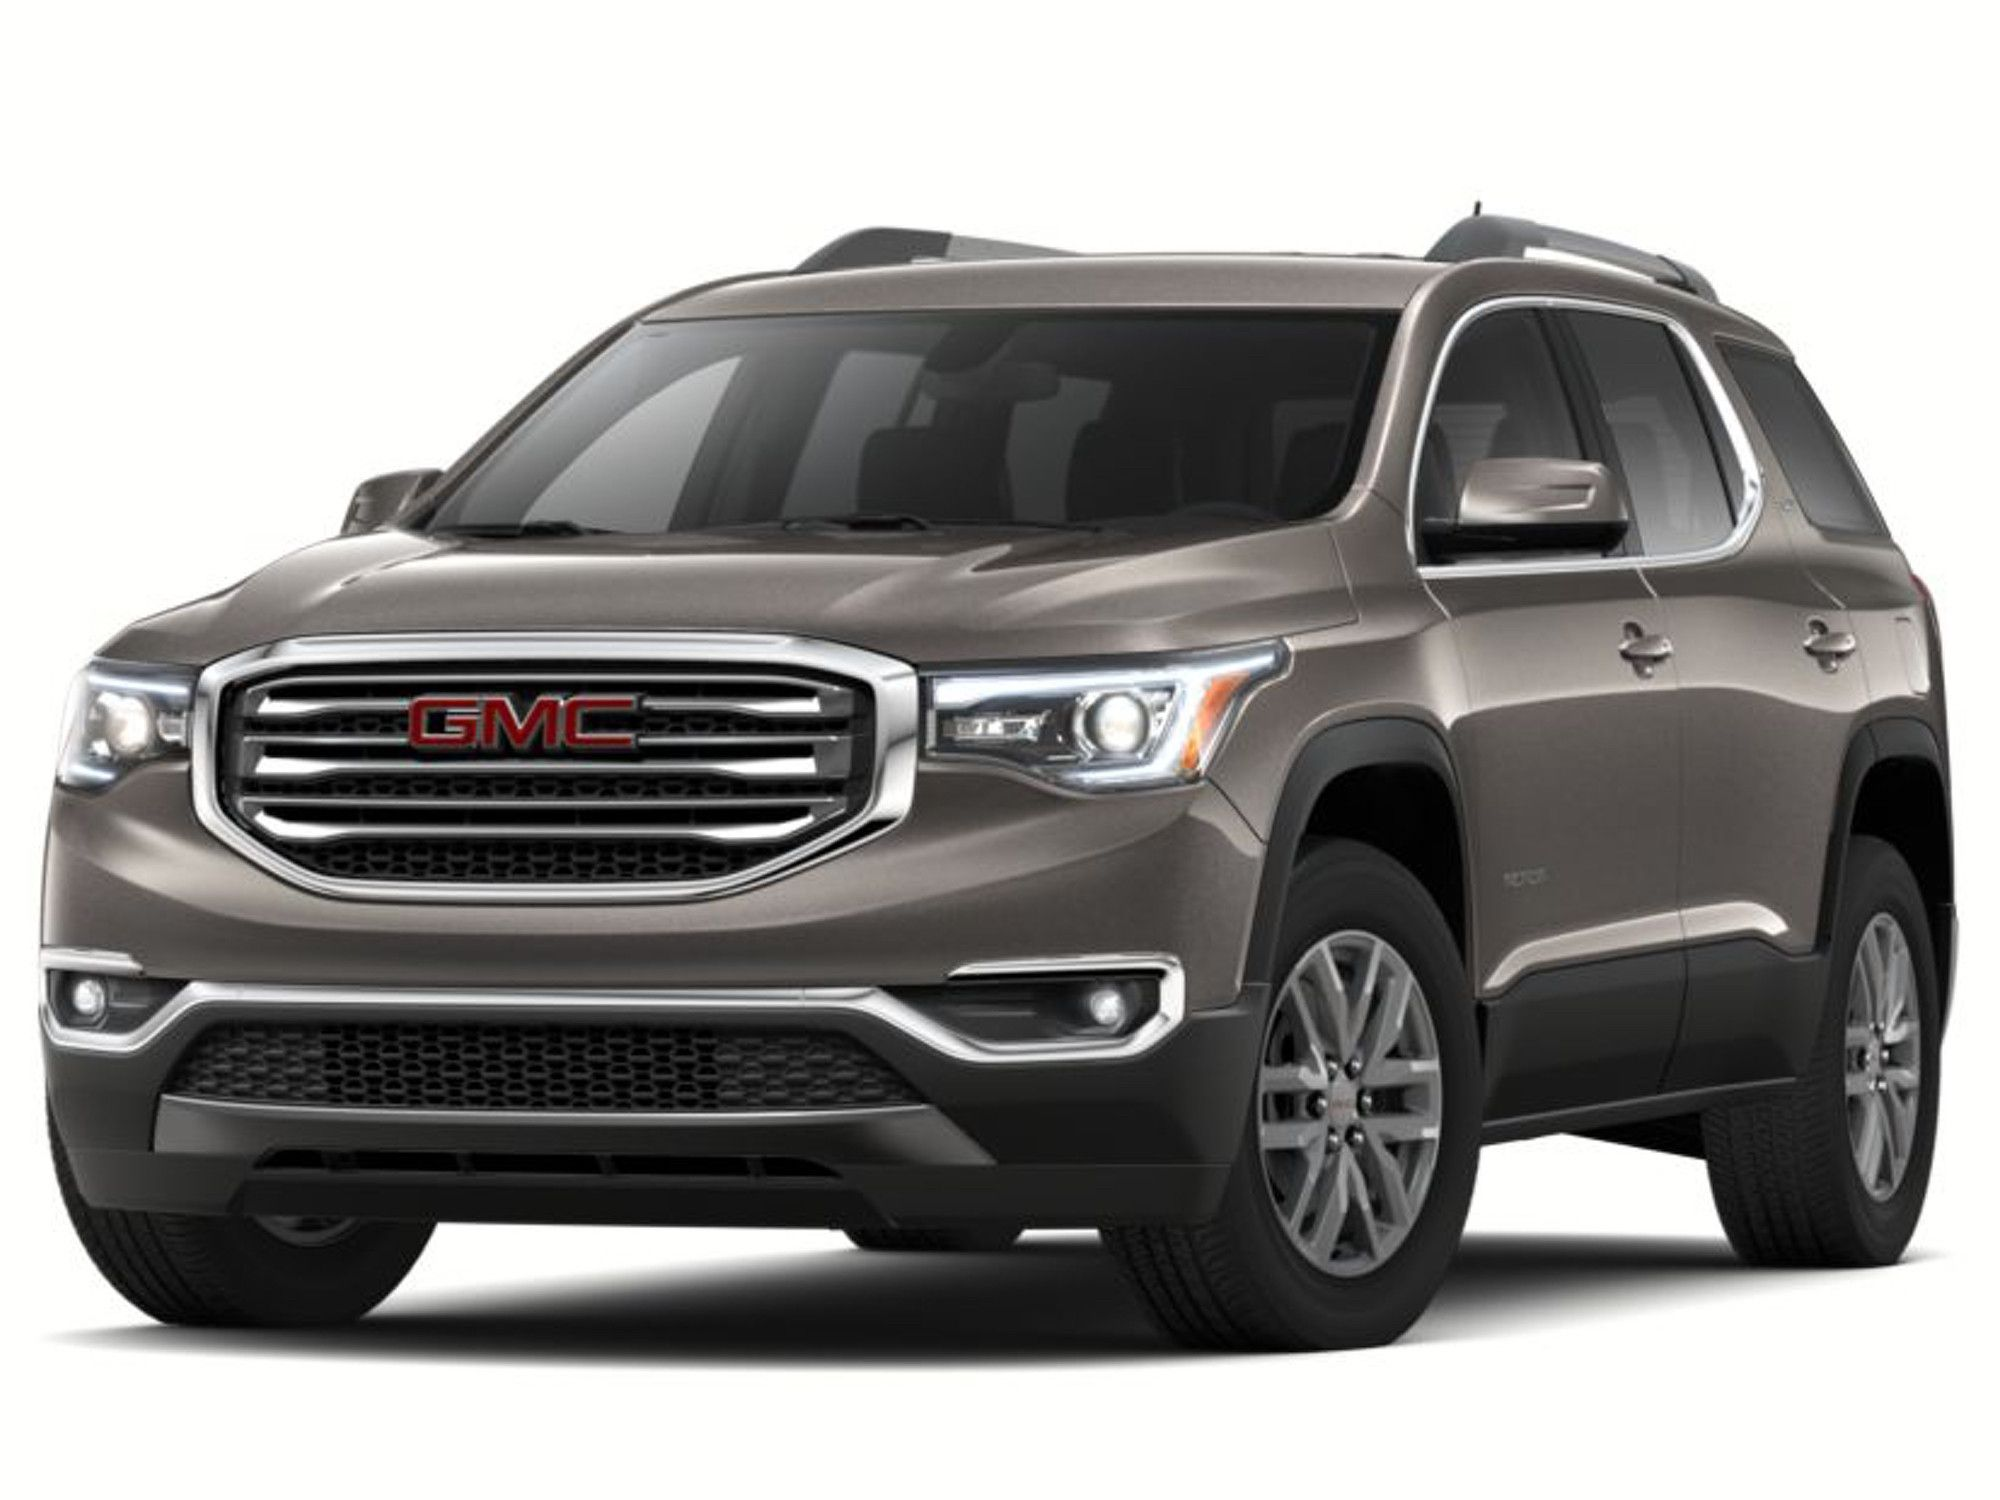 2020 Gmc Acadia Smokey Quartz Metallic Review And Specs Smokey Quartz Metal Quartz